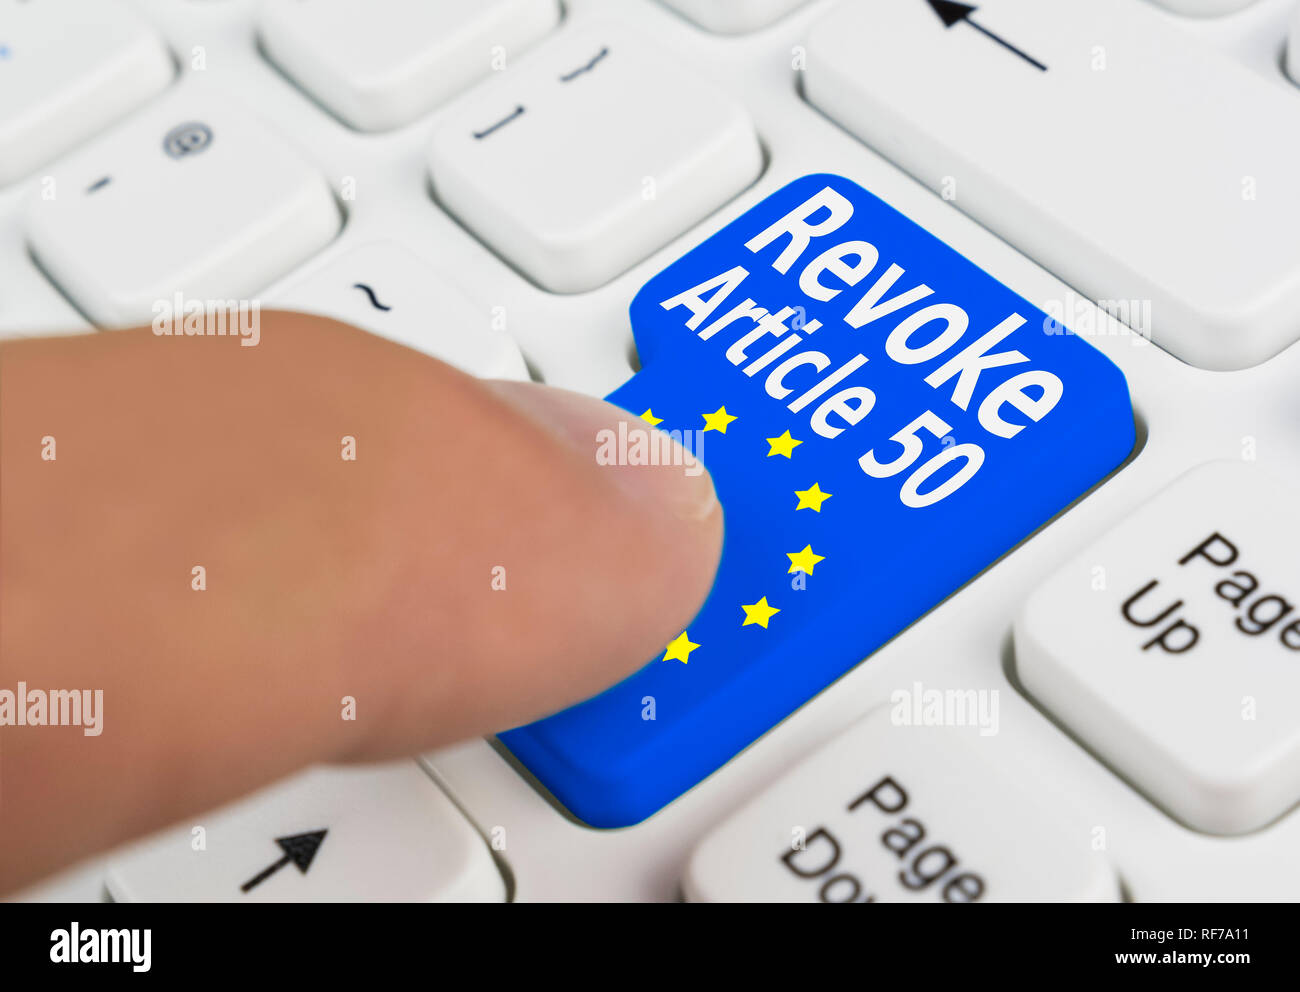 Finger pressing a button on a keyboard to revoke article 50 of the Treaty of Lisbon, delaying or stopping Brexit, meaning the UK wouldn't leave the EU. Stock Photo